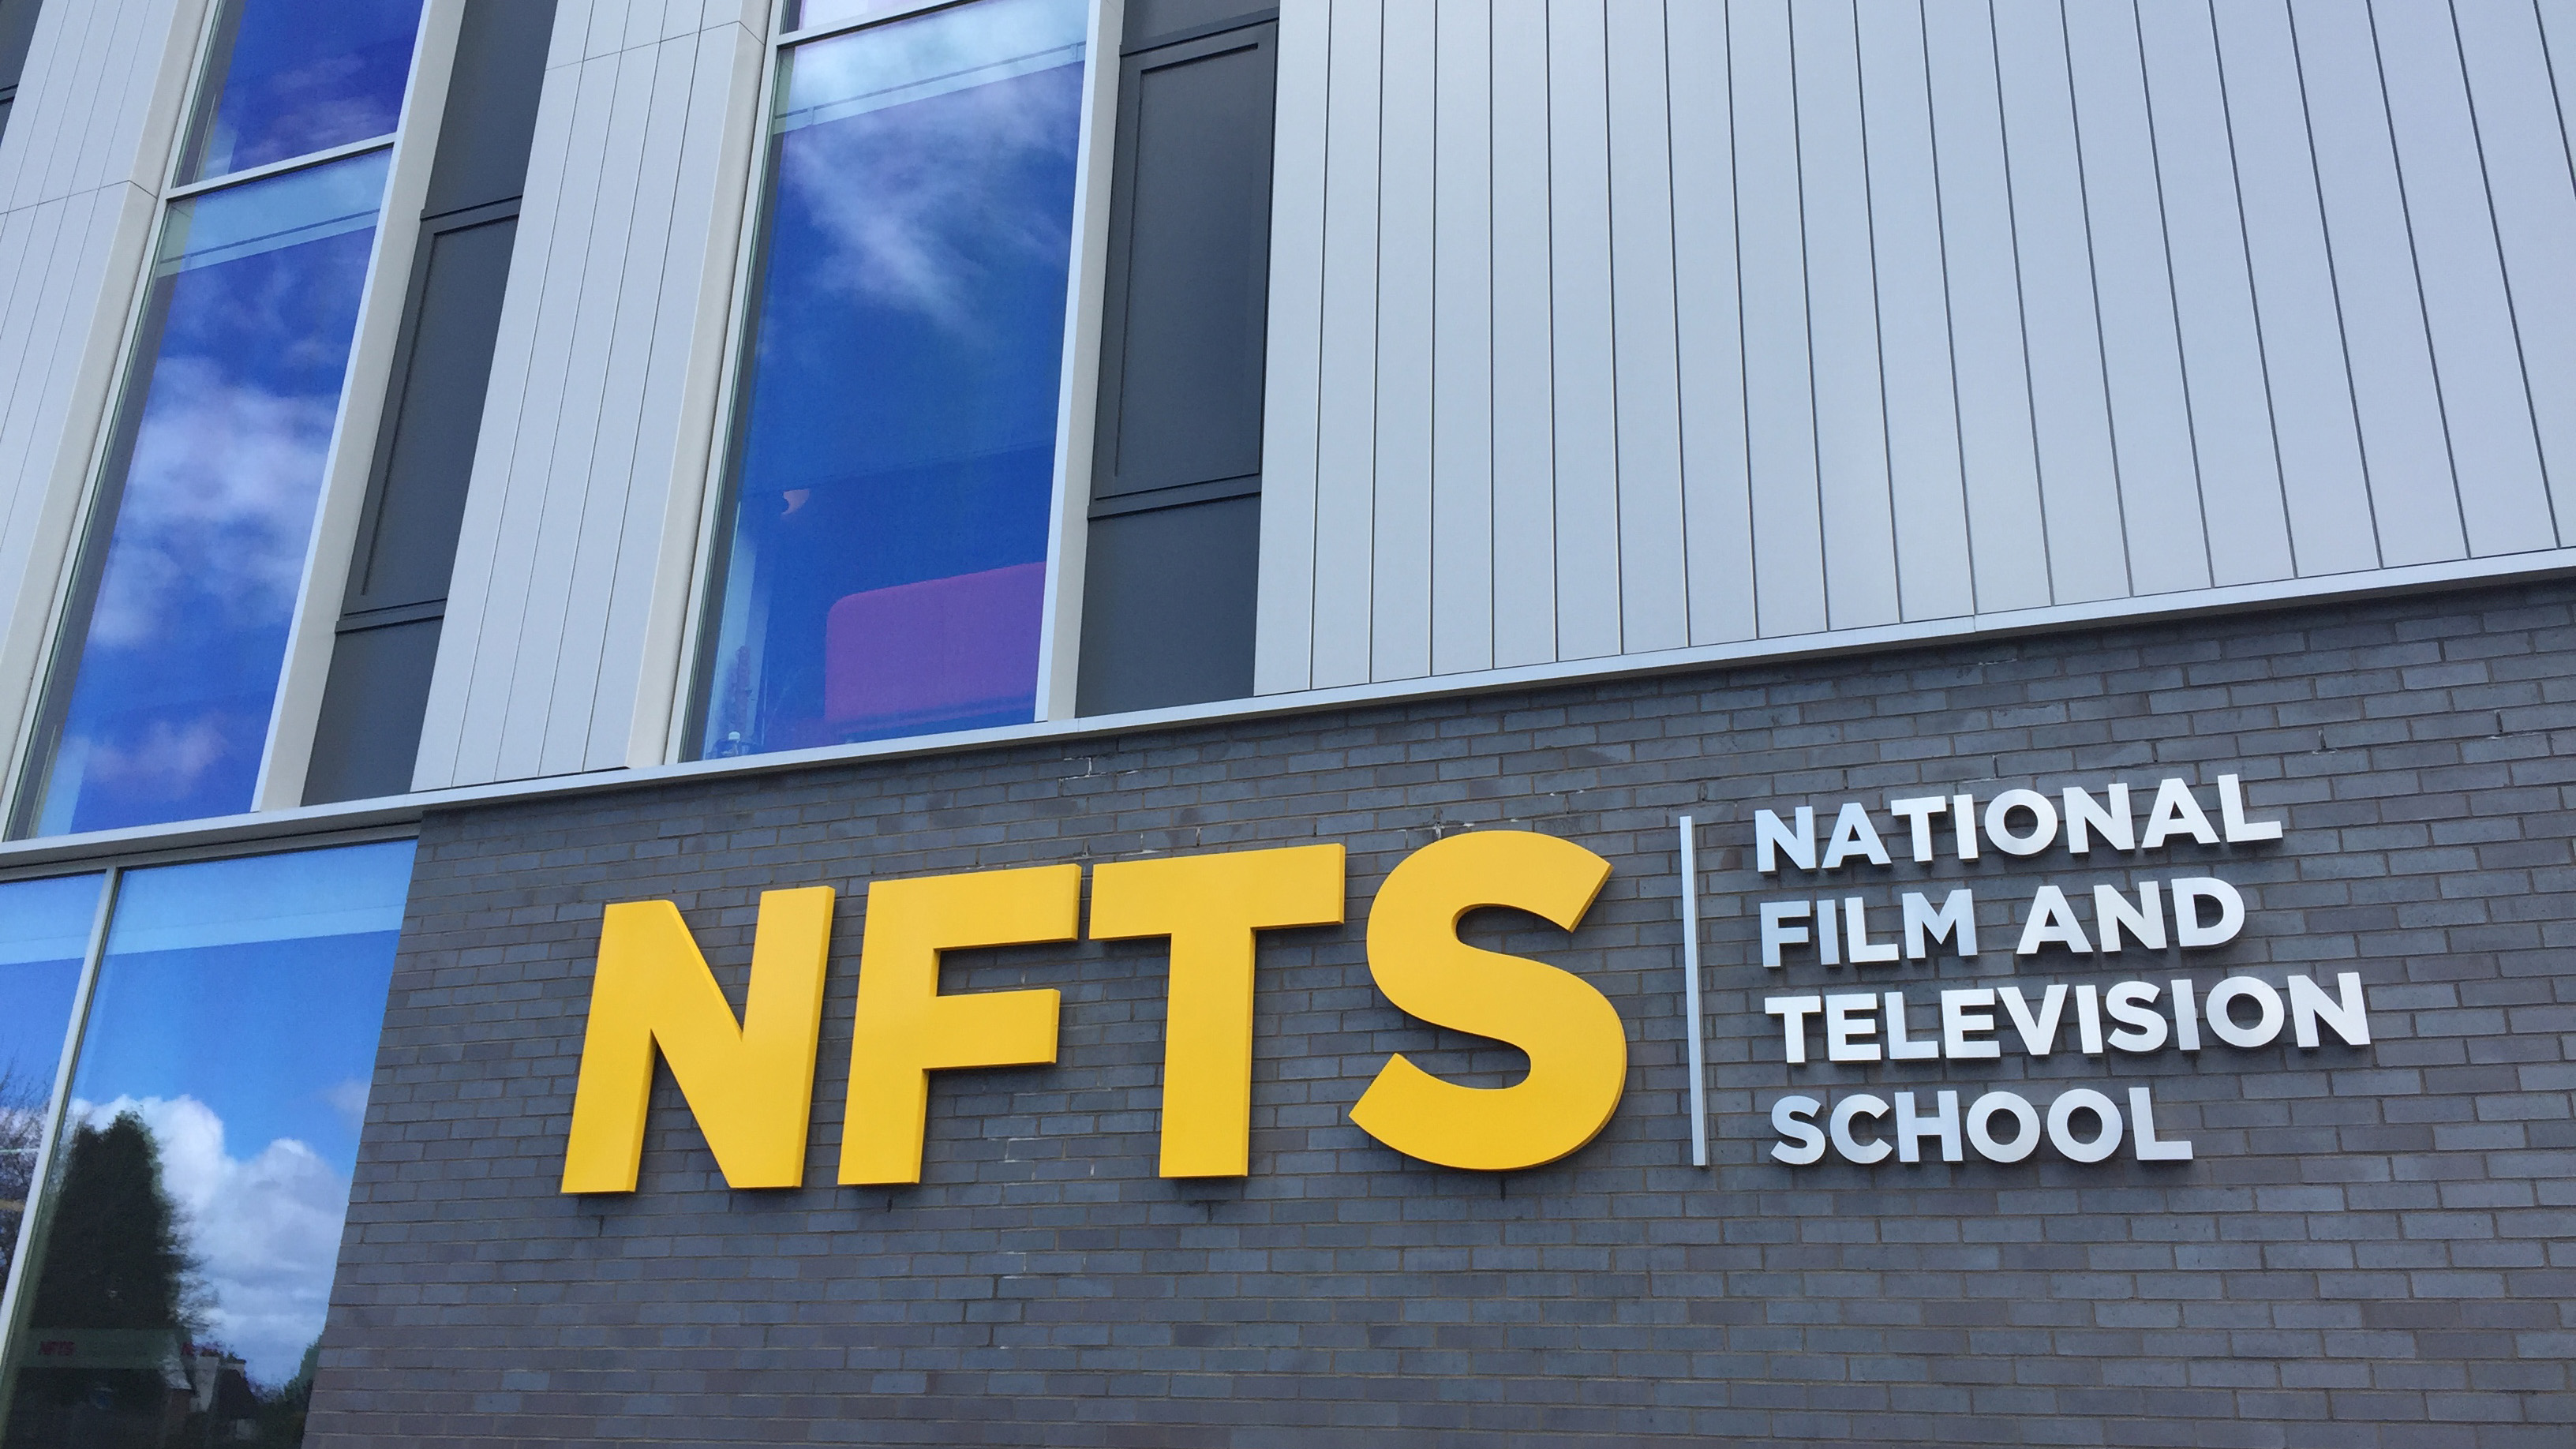 National Film and Television School (NFTS)